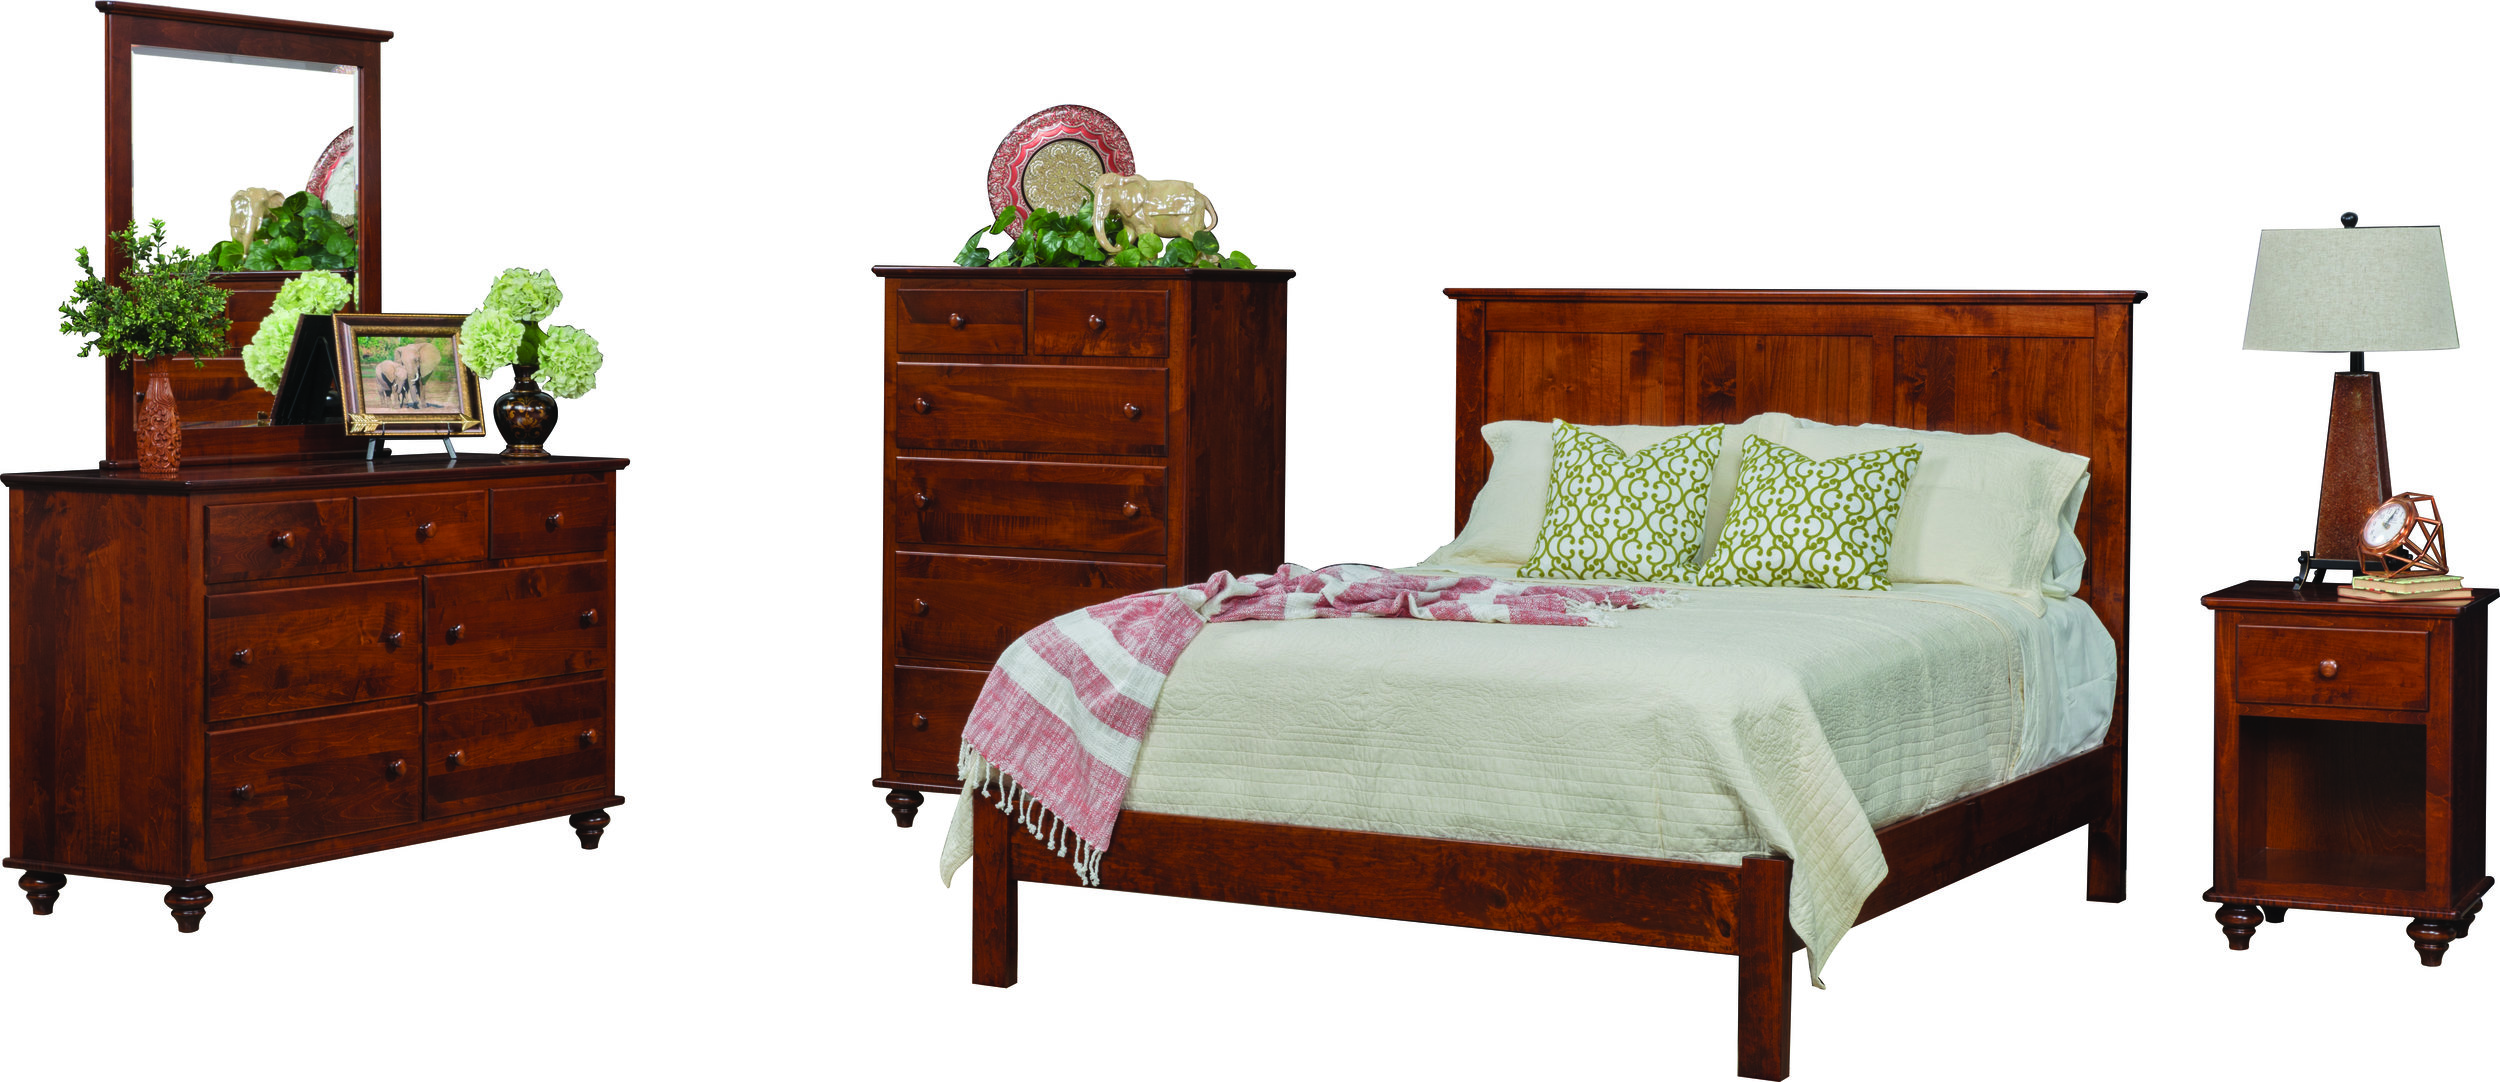 Wilkensburg_Bedroom_Collection-Standard.jpg